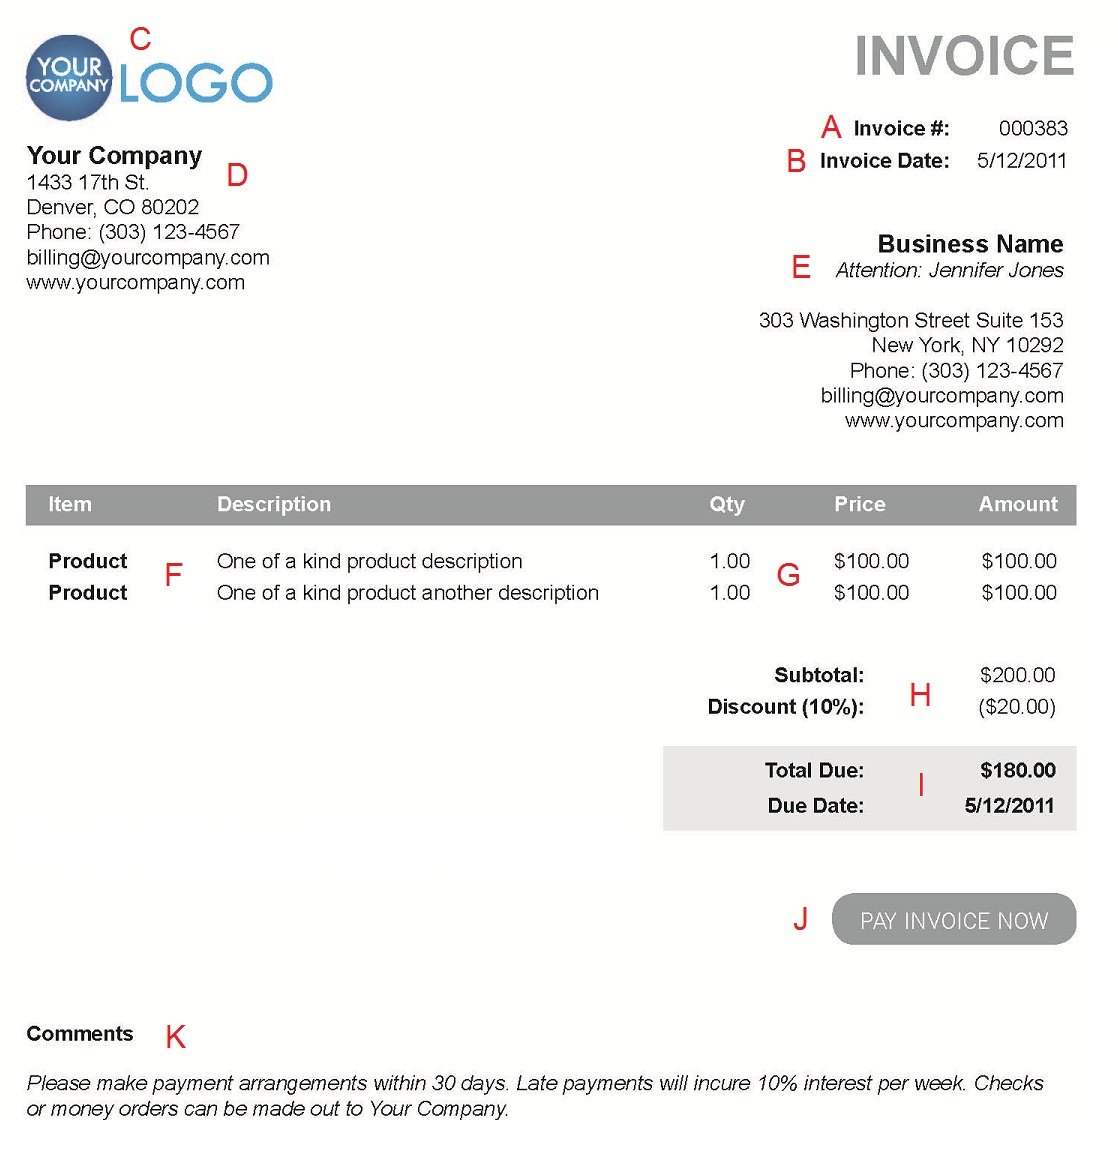 Coolmathgamesus  Splendid The  Different Sections Of An Electronic Payment Invoice With Marvelous A  With Cool Return To Nordstrom Without Receipt Also Best Receipt Organizer App In Addition Hotels Com Receipt And Receipt For Application As Well As Salvation Army Tax Receipt Additionally Receipt Ocr From Paysimplecom With Coolmathgamesus  Marvelous The  Different Sections Of An Electronic Payment Invoice With Cool A  And Splendid Return To Nordstrom Without Receipt Also Best Receipt Organizer App In Addition Hotels Com Receipt From Paysimplecom